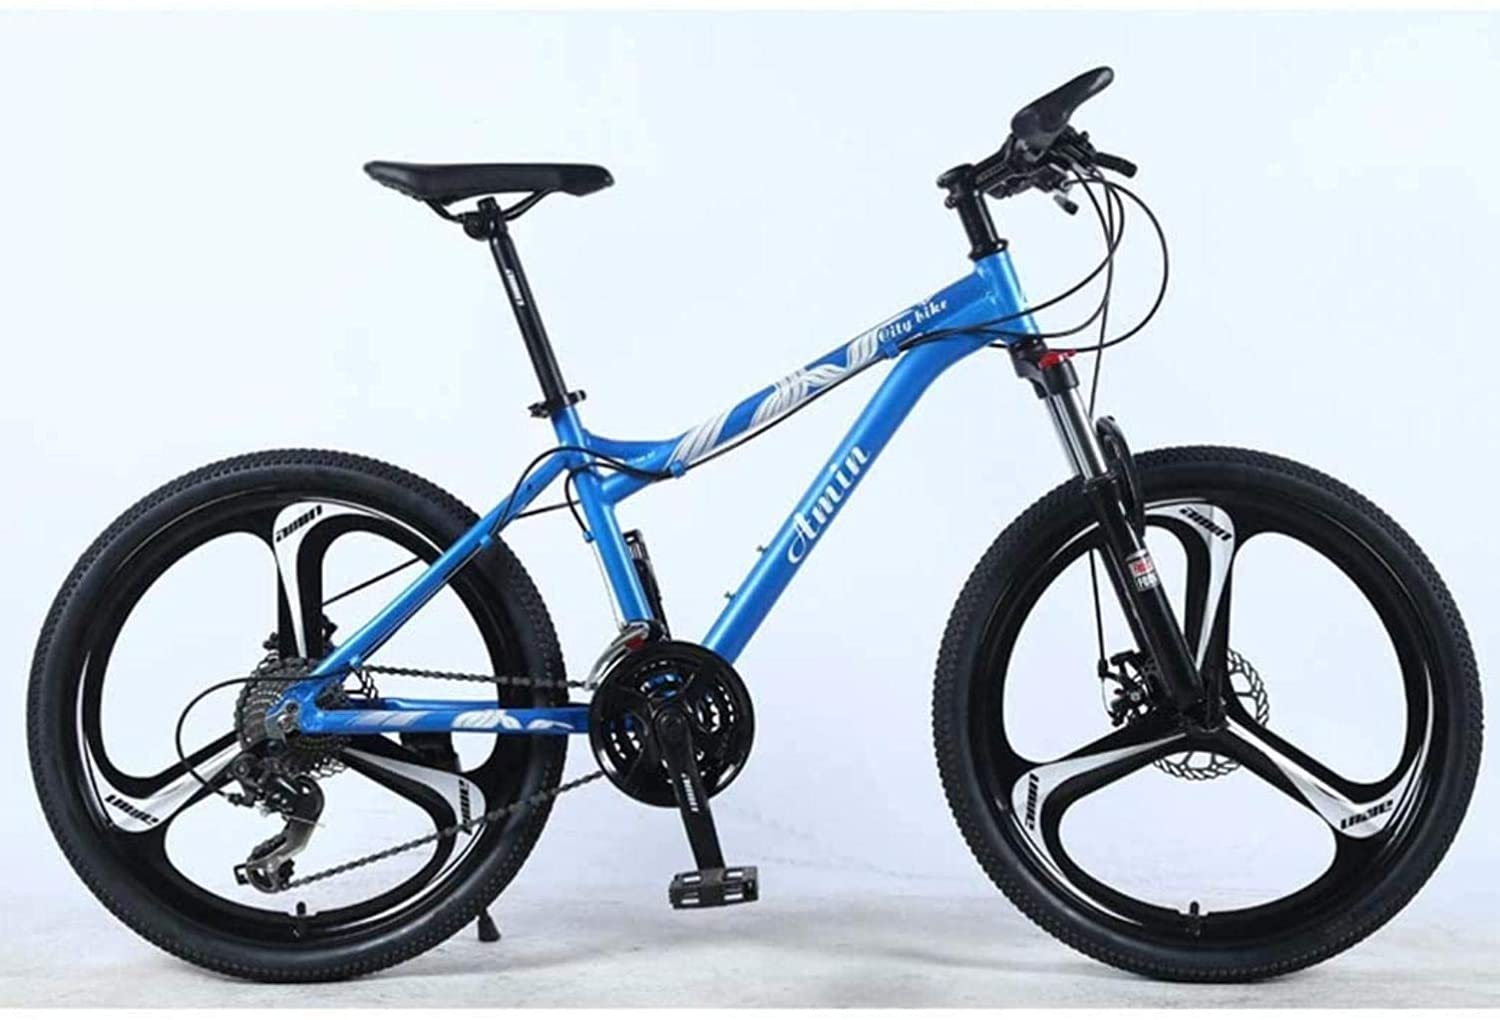 MJY 24In 21-Speed Mountain Bike for Adult,Aluminum Alloy Full Frame,Front Suspension Female Off-Road Student Shifting Adult Bicycle, Disc Brake 6-20,C